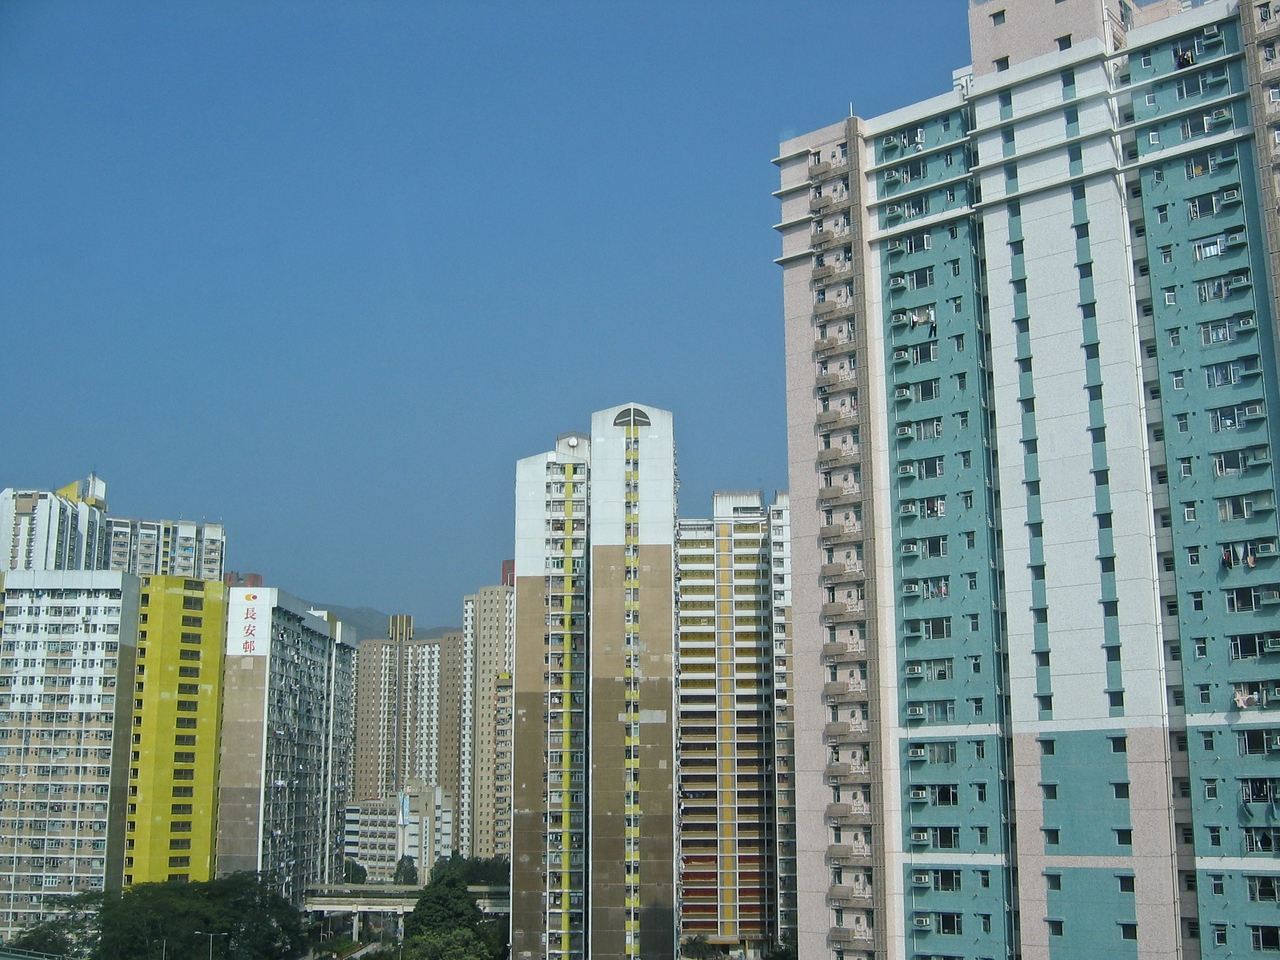 You pass hundreds of tall apartment buildings on the journey from the airport to central Hong Kong.